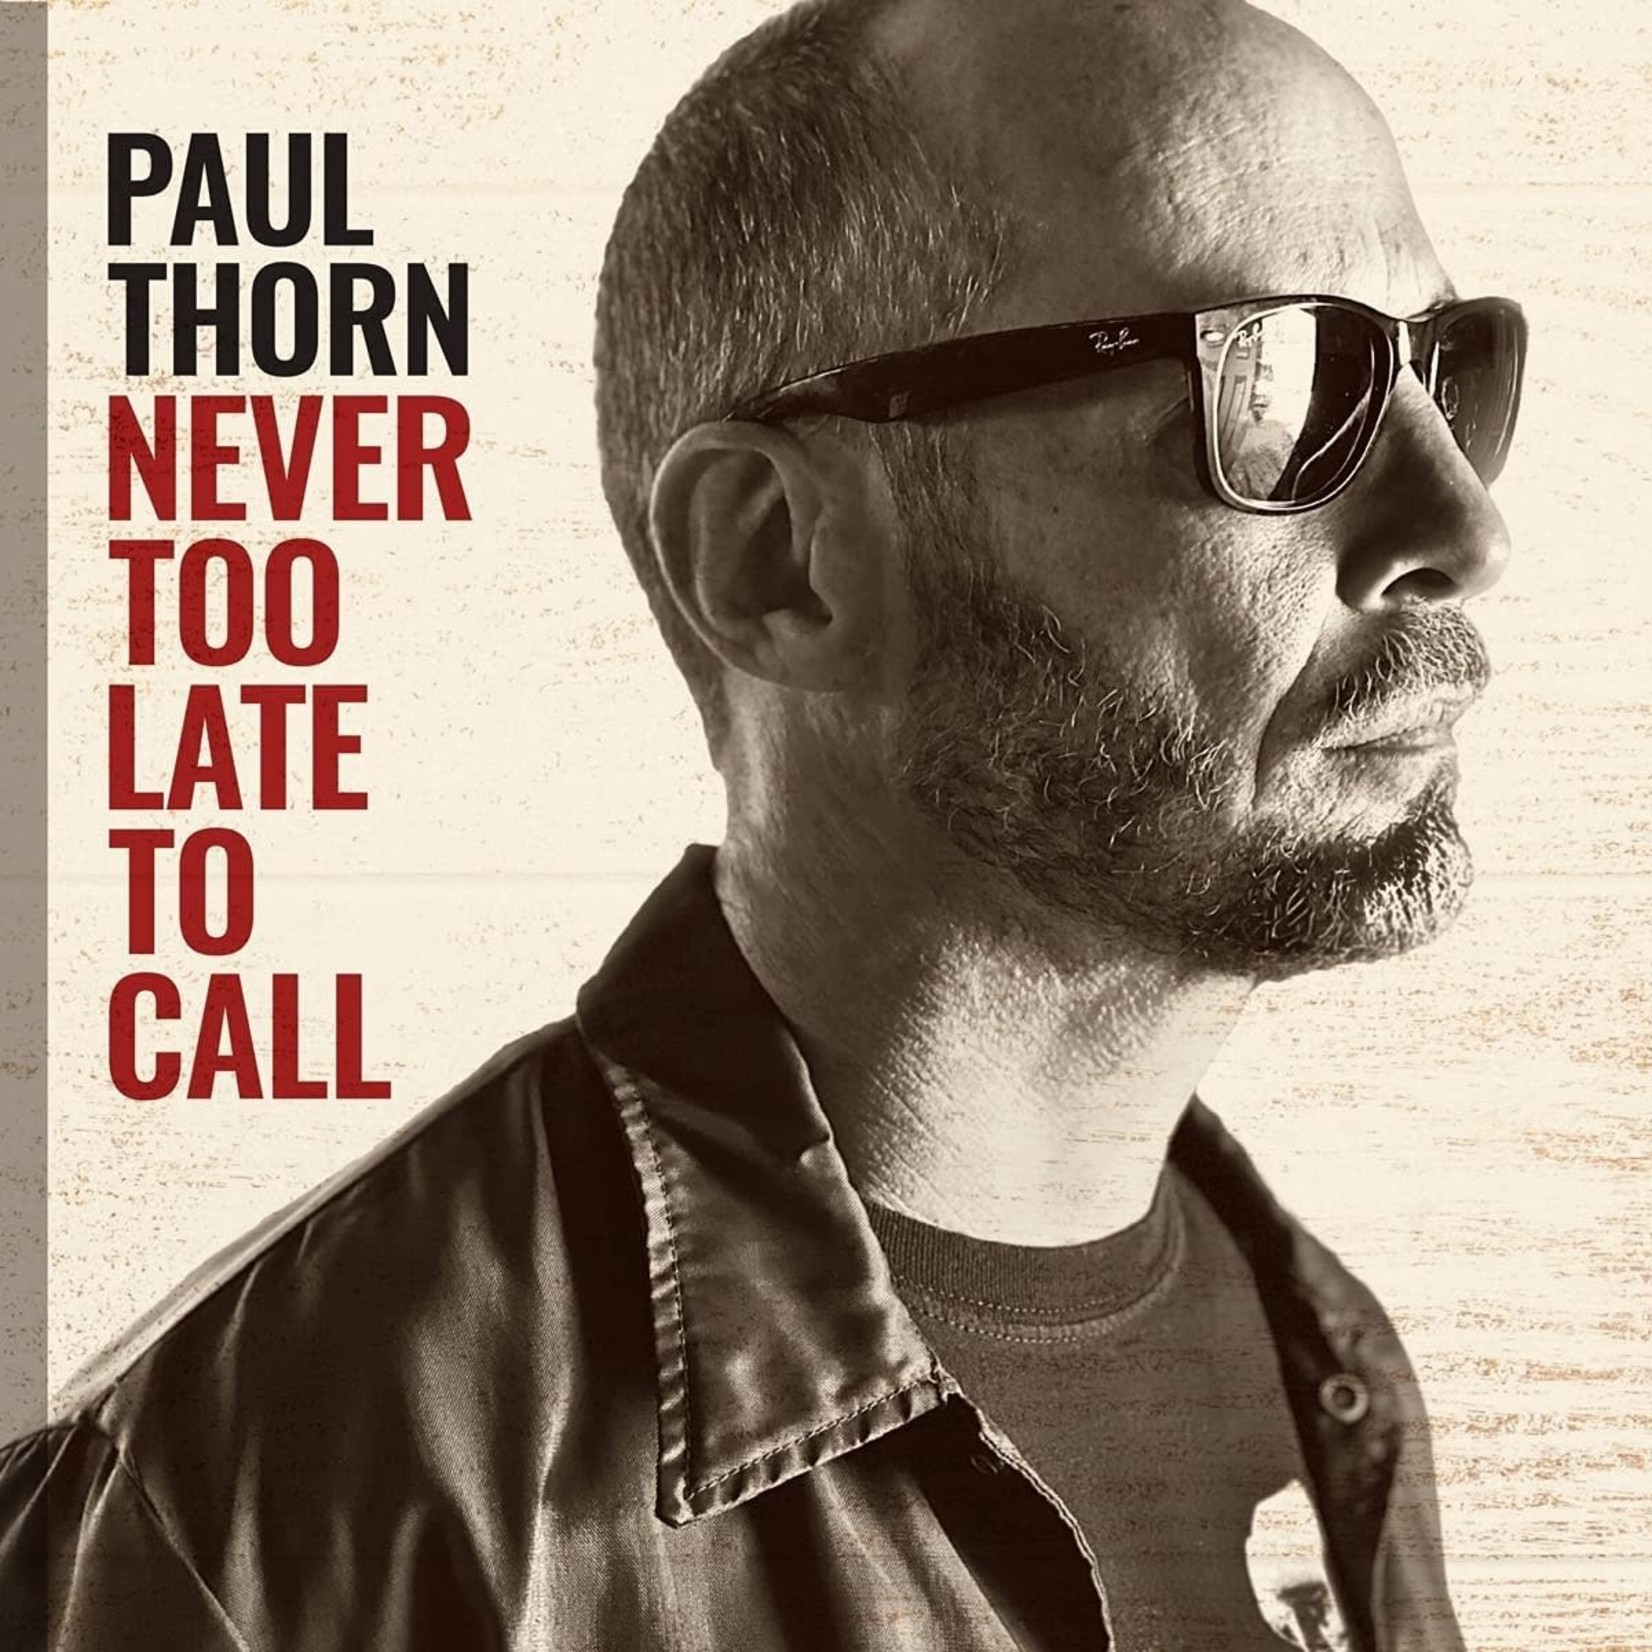 PAUL THORN NEVER TOO LATE TO CALL  LP